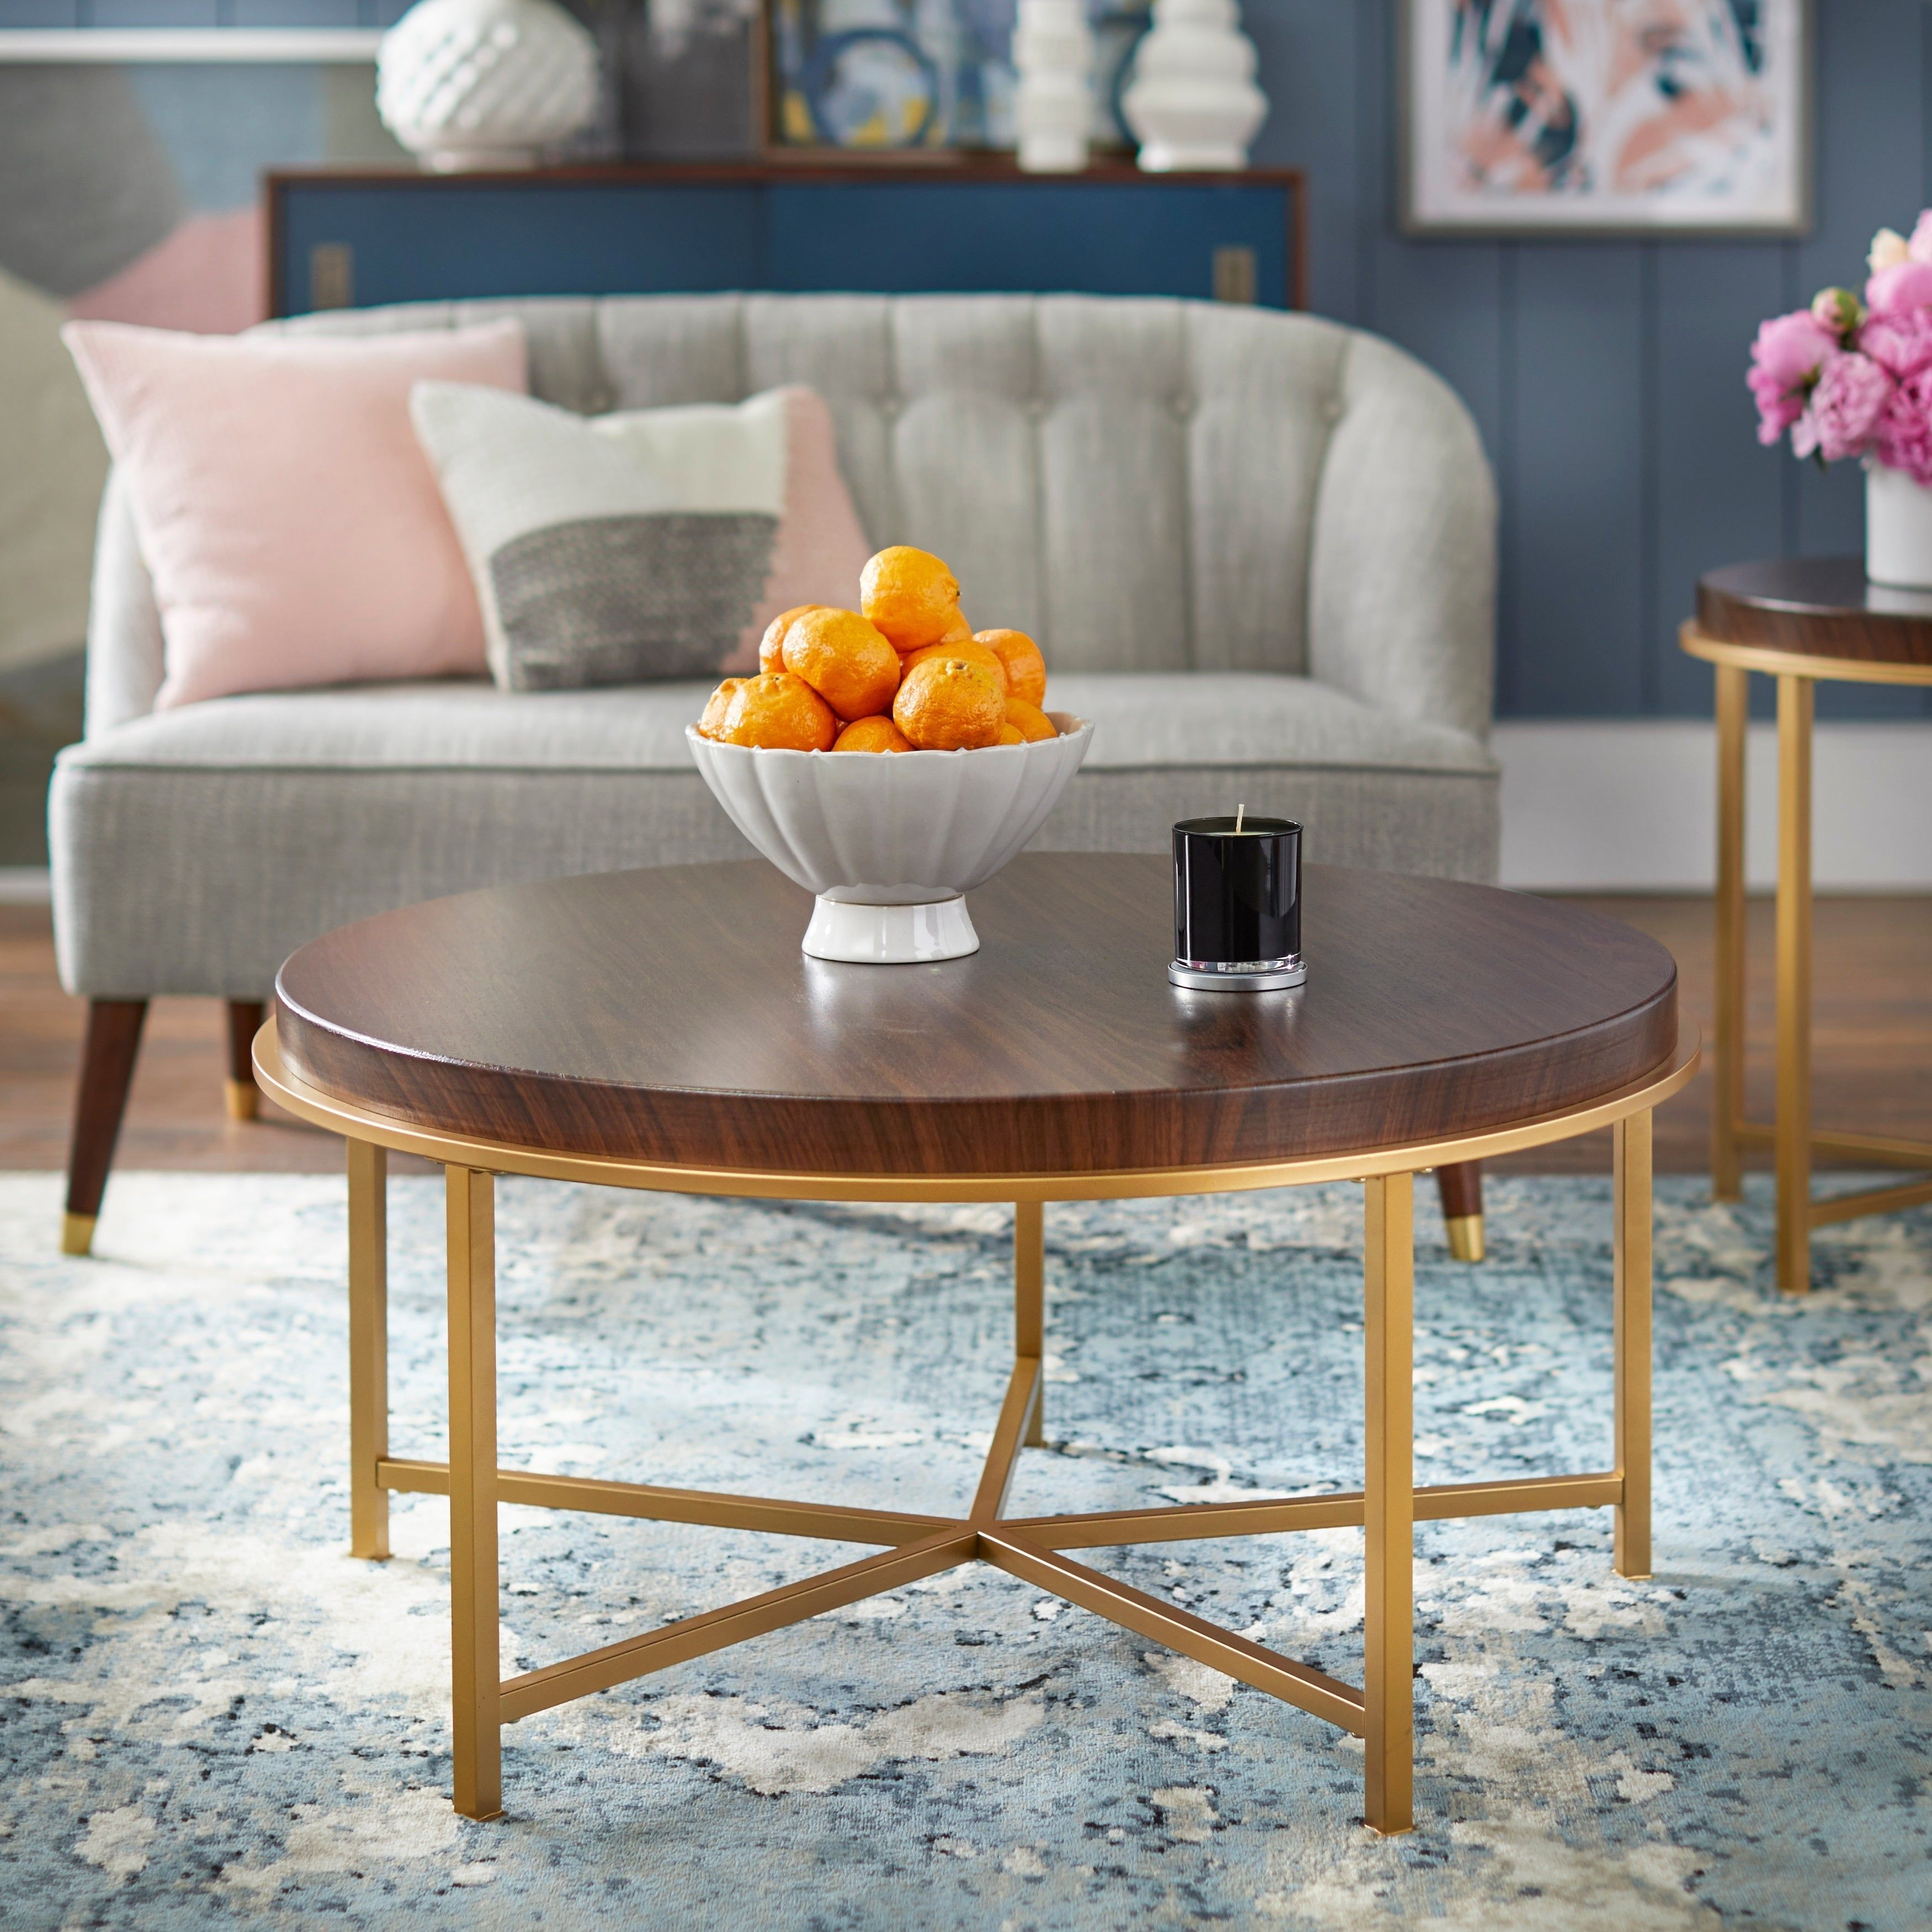 Overstock Com Online Shopping Bedding Furniture Electronics Jewelry Clothing More In 2020 Home Coffee Tables Coffee Table Walnut Coffee Table [ 3500 x 3500 Pixel ]